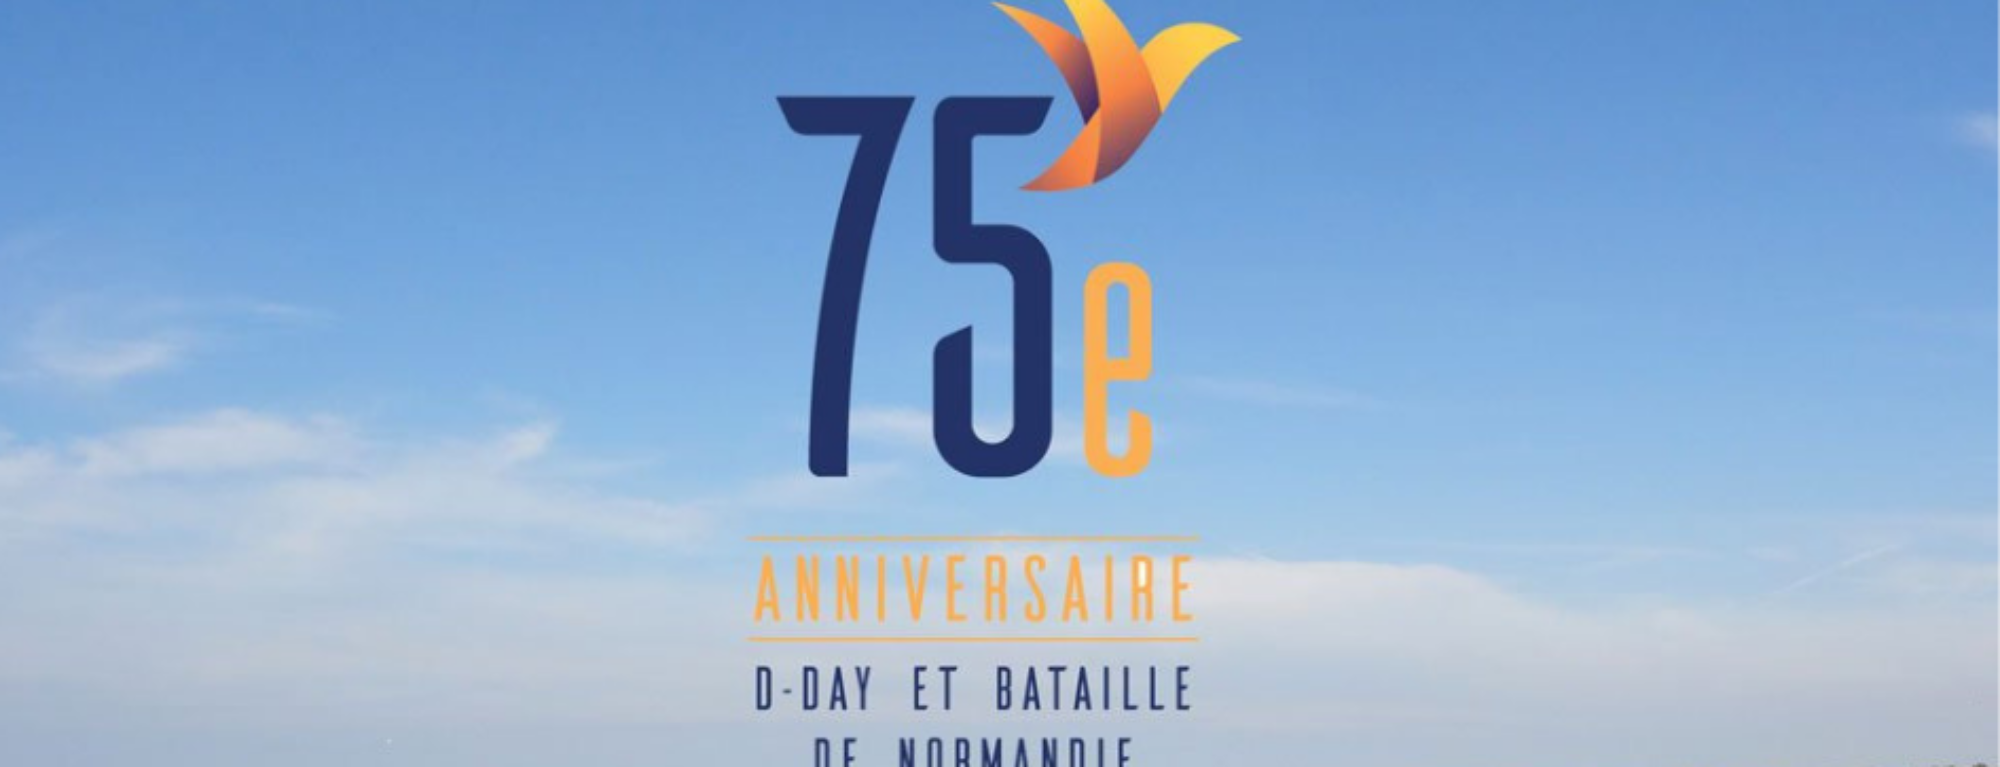 75th anniversary of the D-DAY and Battle of Normandy: selection of addresses to prepare your stay